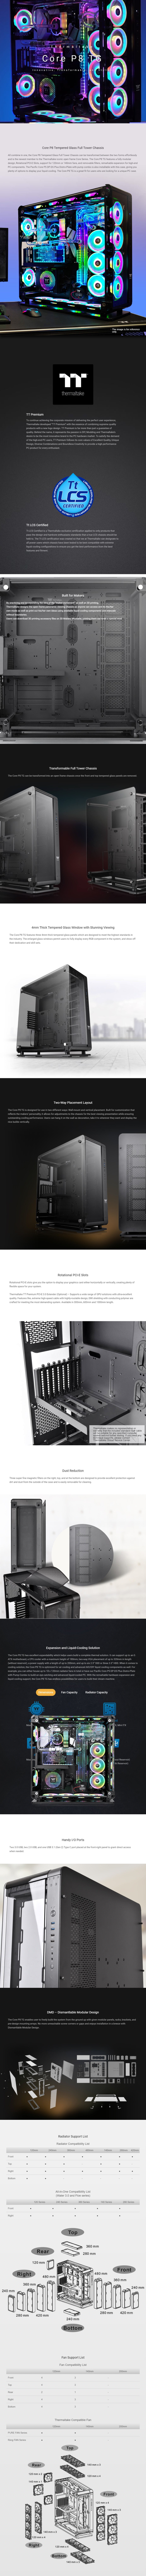 Thermaltake Core P8 Tempered Glass Full-Tower E-ATX Case - Overview 1